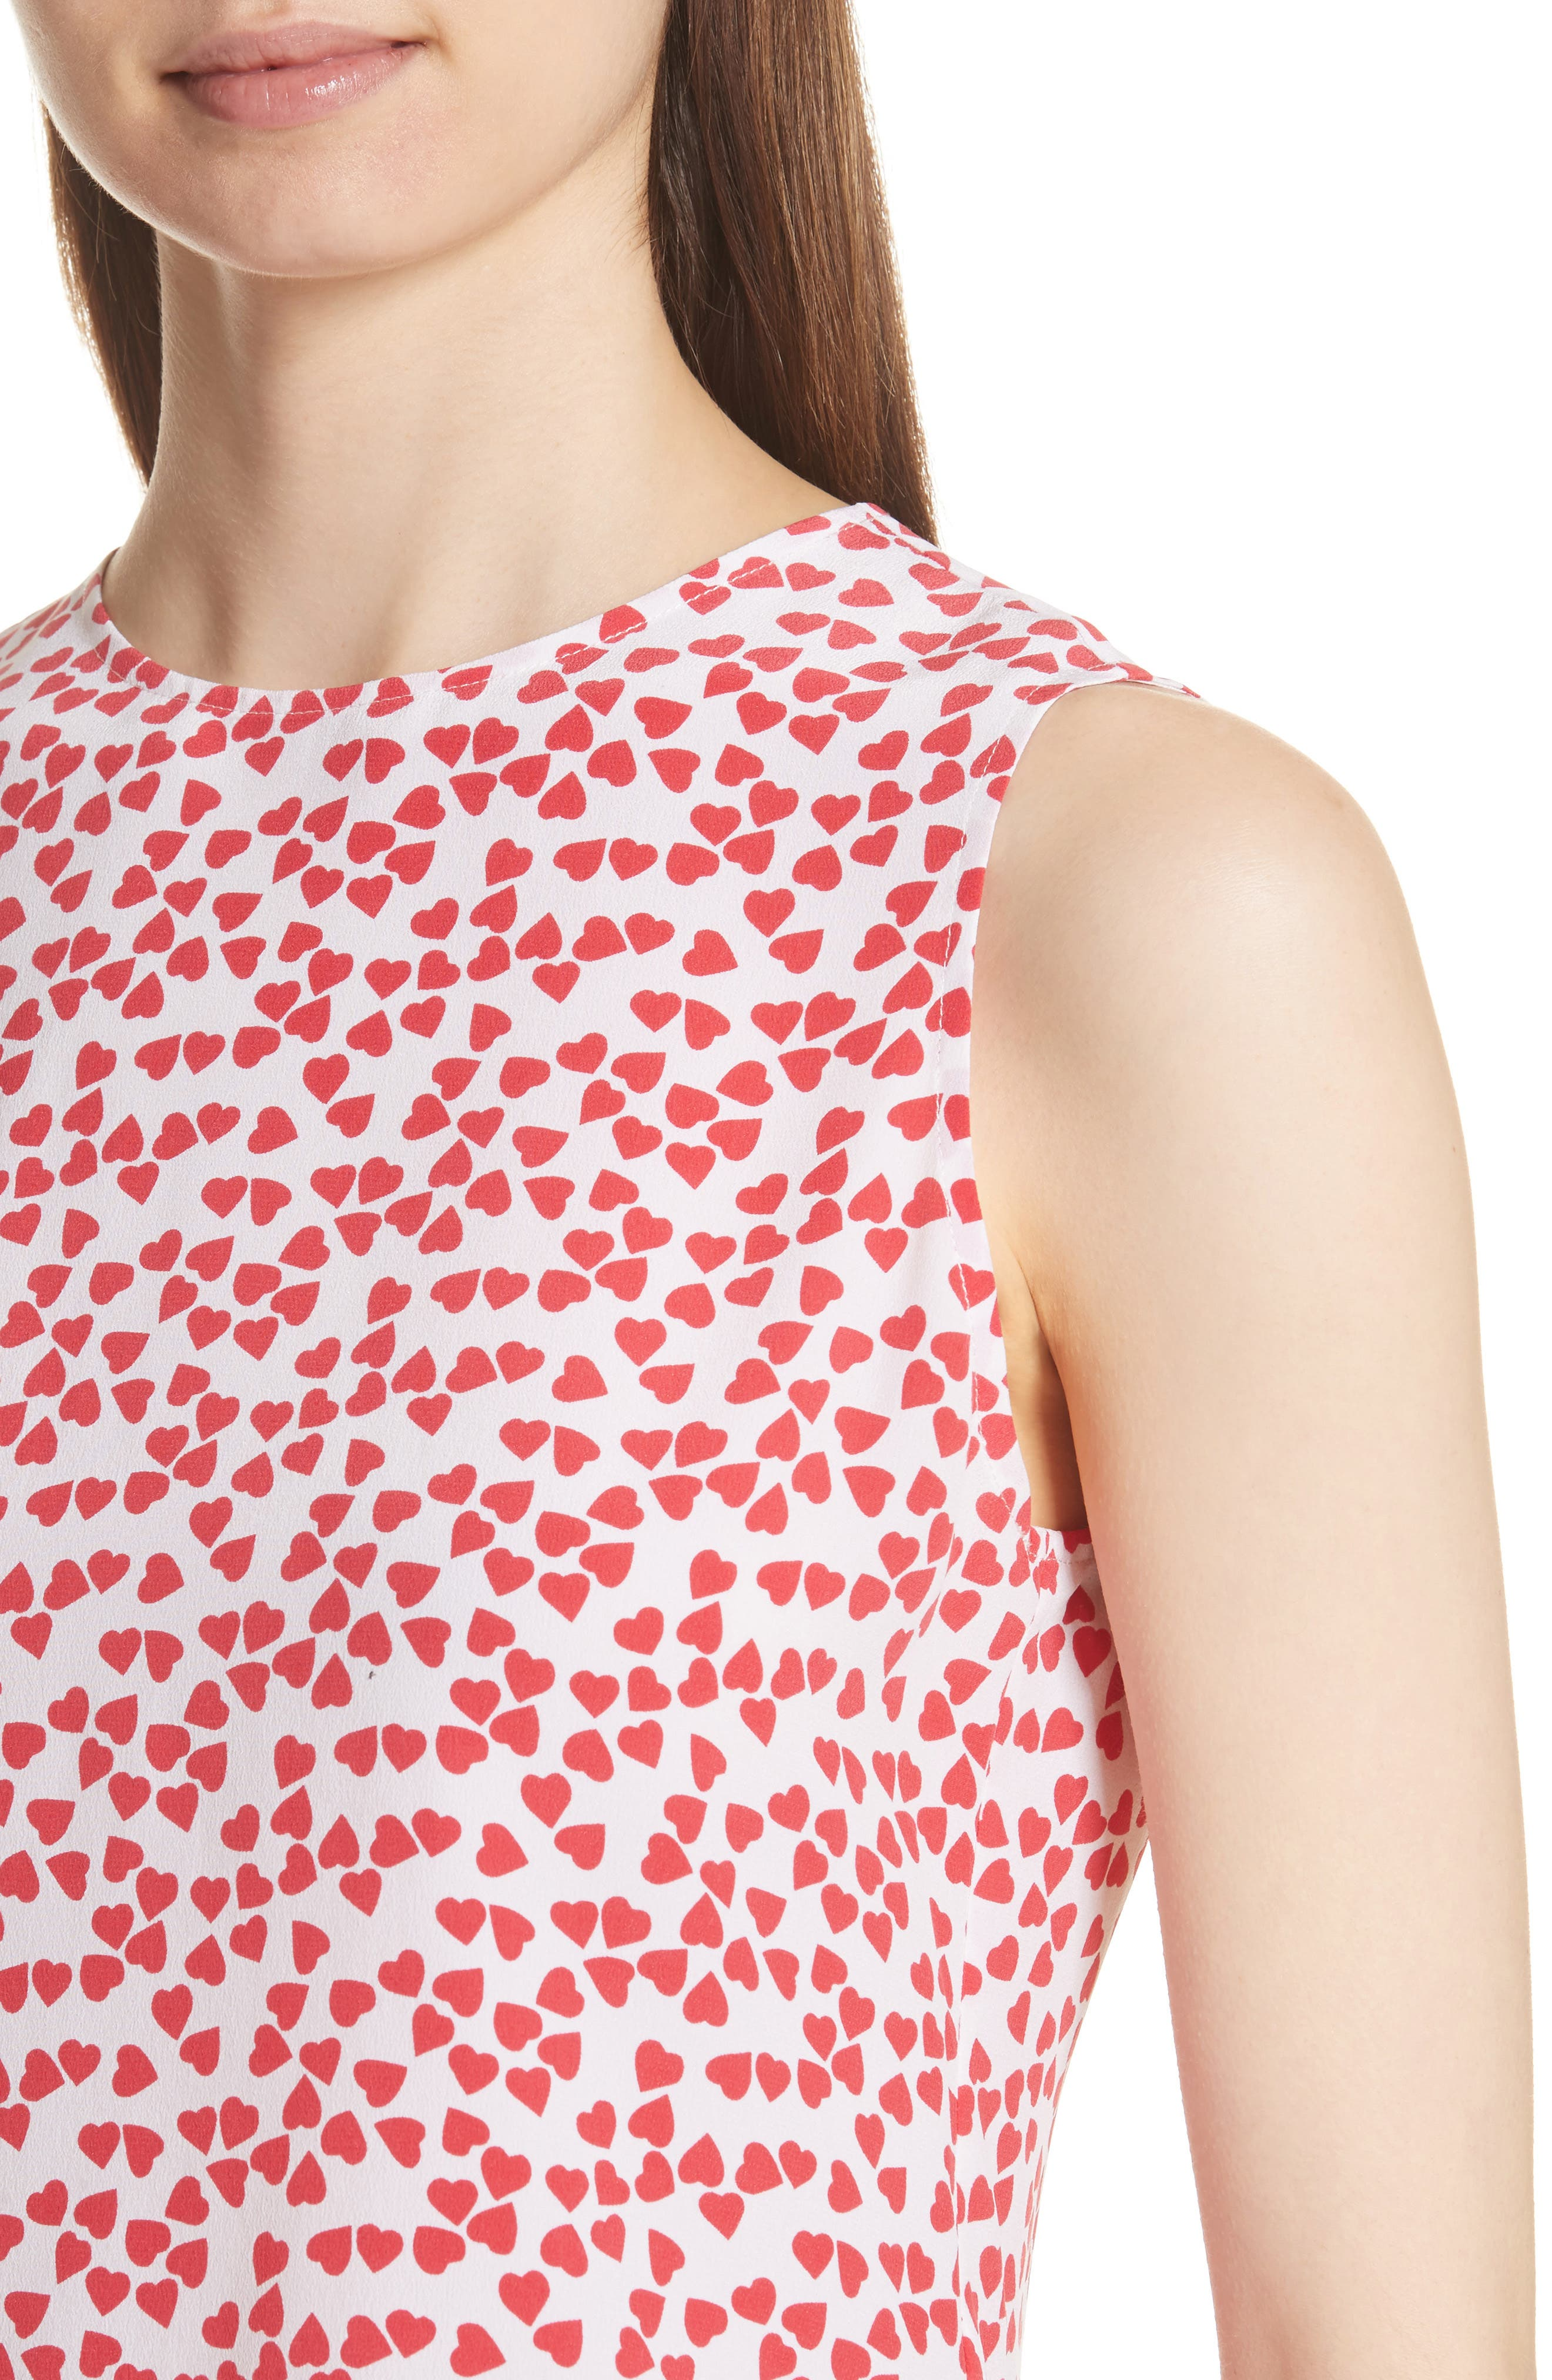 Lyle Print Silk Sleeveless Top,                             Alternate thumbnail 4, color,                             Bright White-Charged Pink